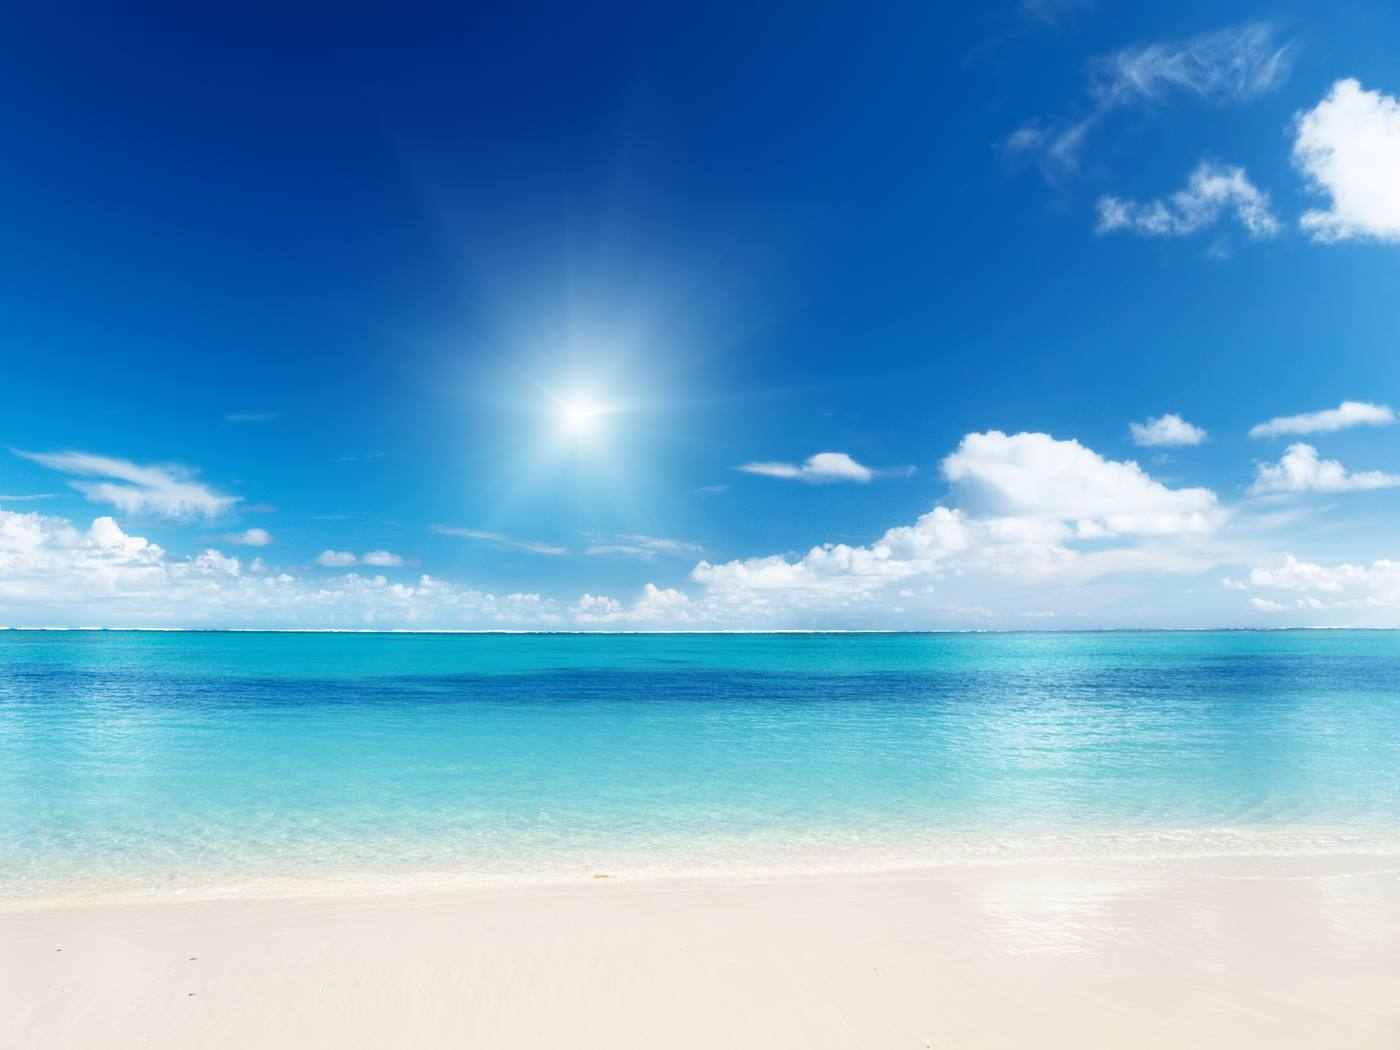 Group of Beach of the Caribbean Sea   NATURE WALLPAPER We Heart It 1400x1050